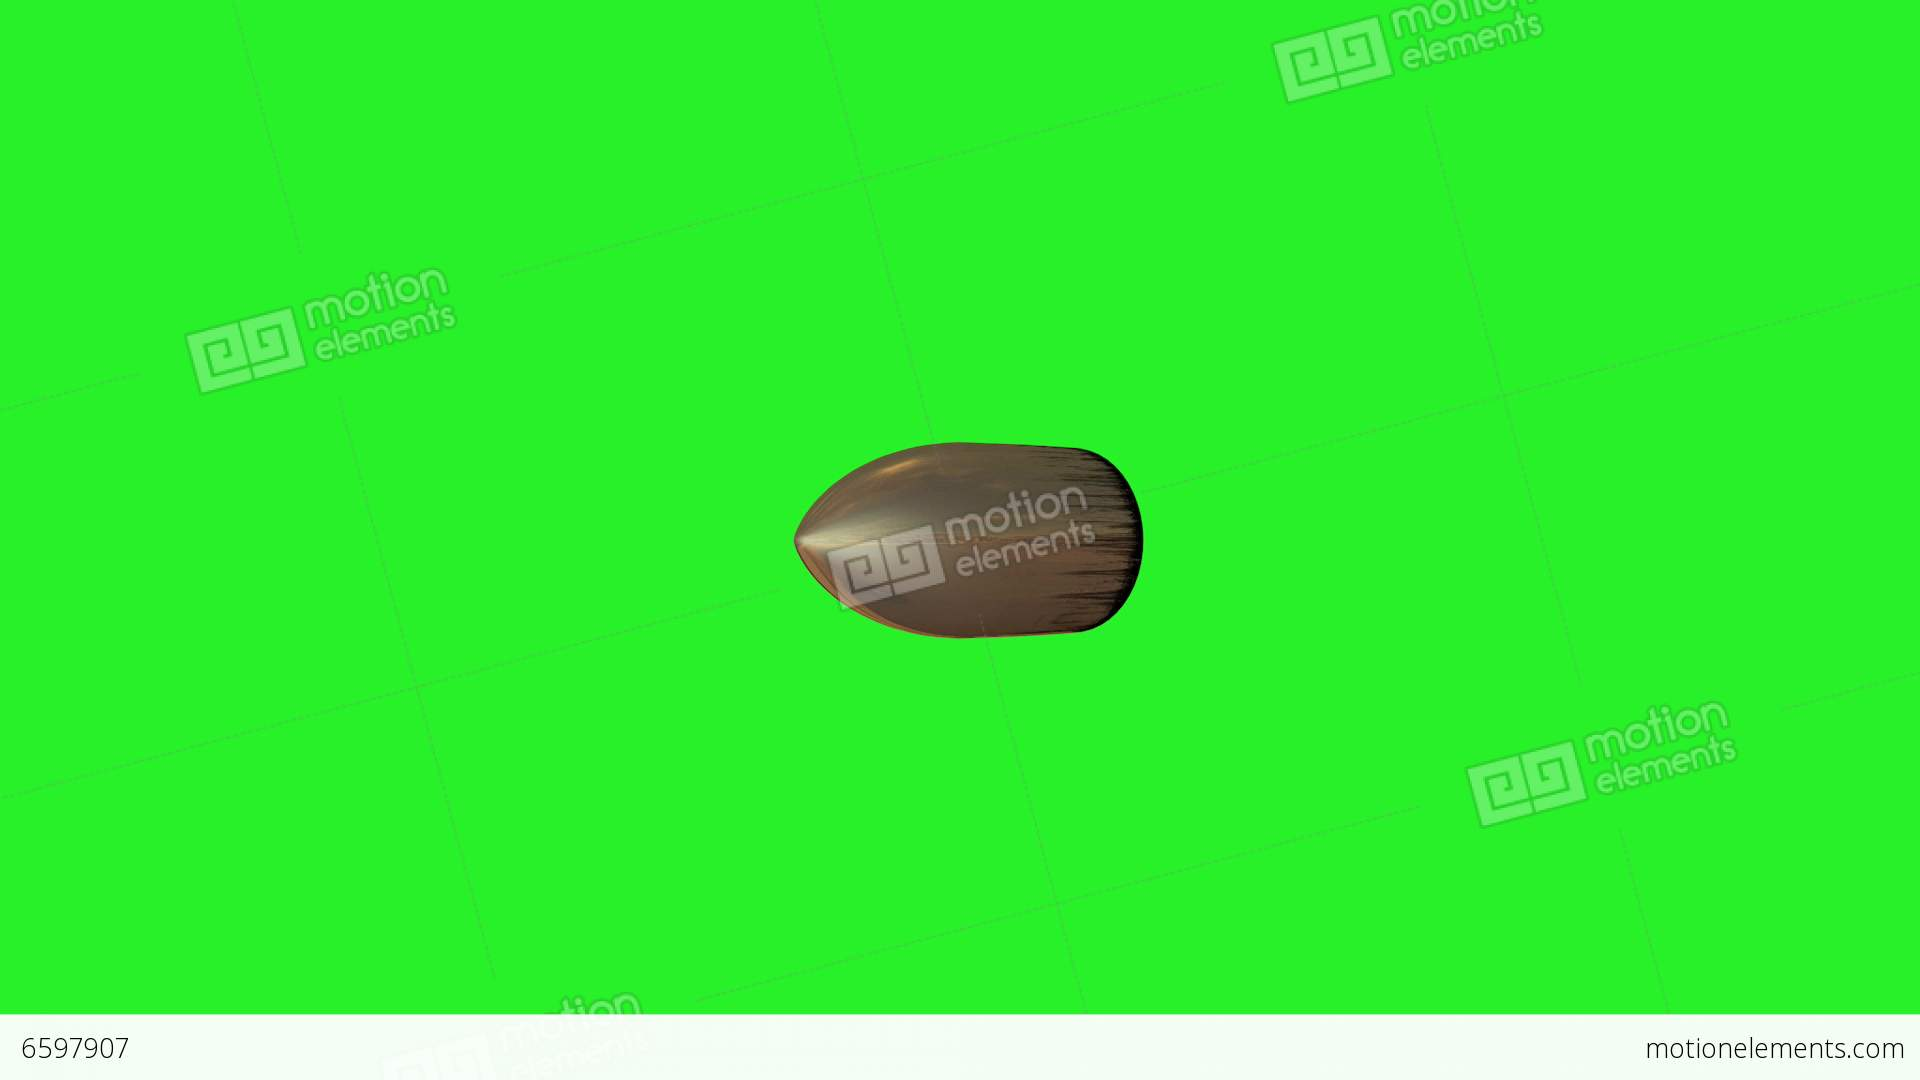 How To Make Green Screen Effect Video And Chroma Key On Kine Master